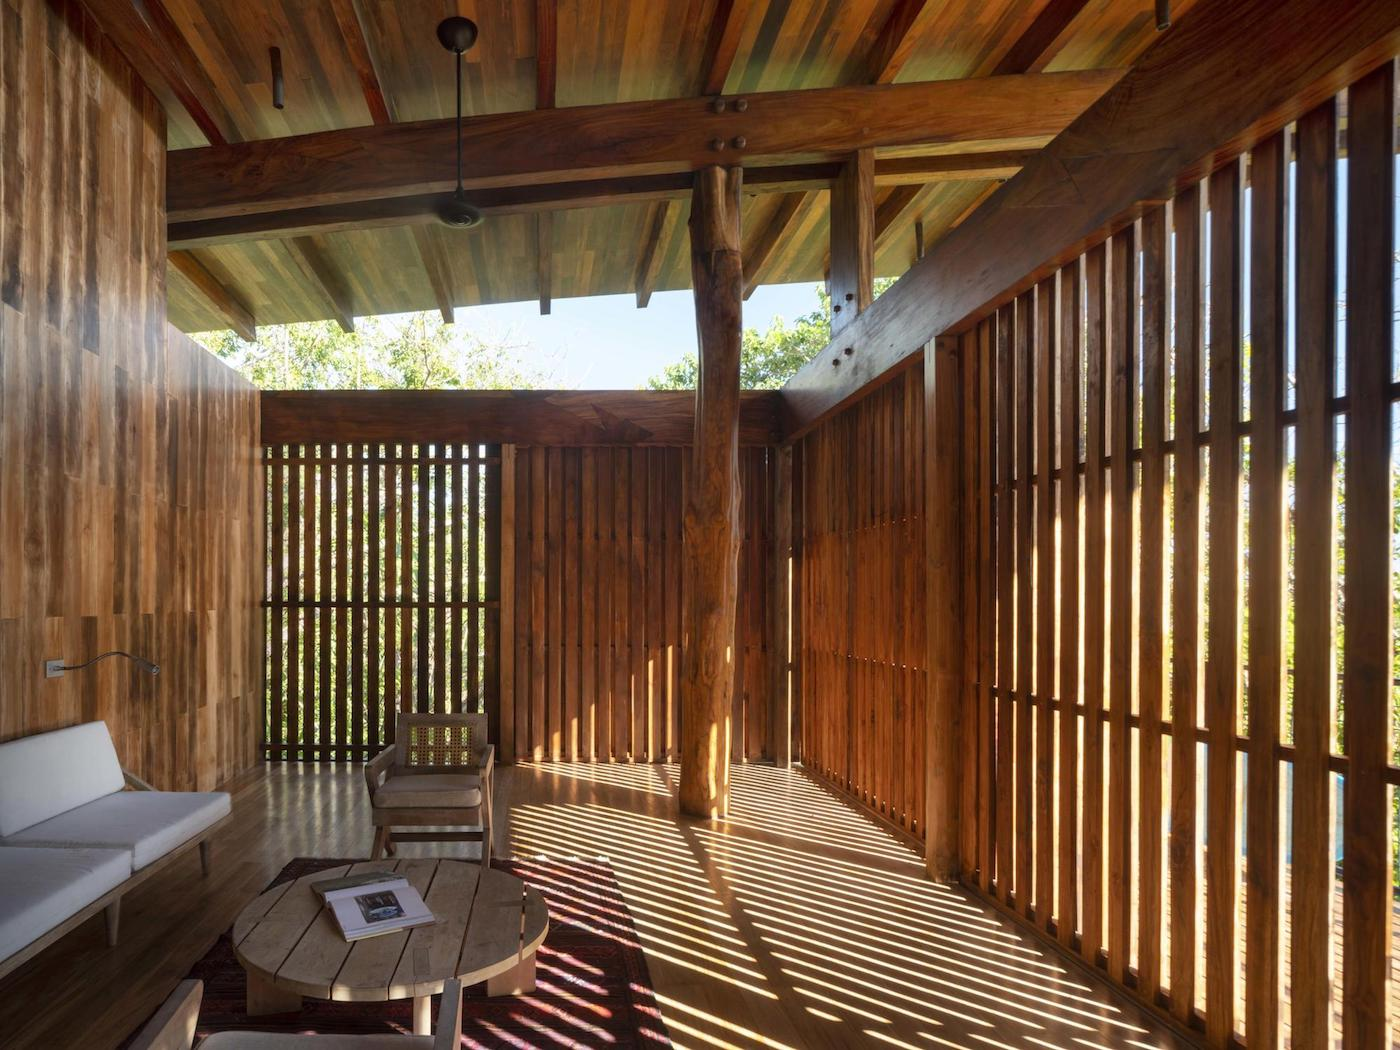 Timber operable screen closed in loungeroom of timber home